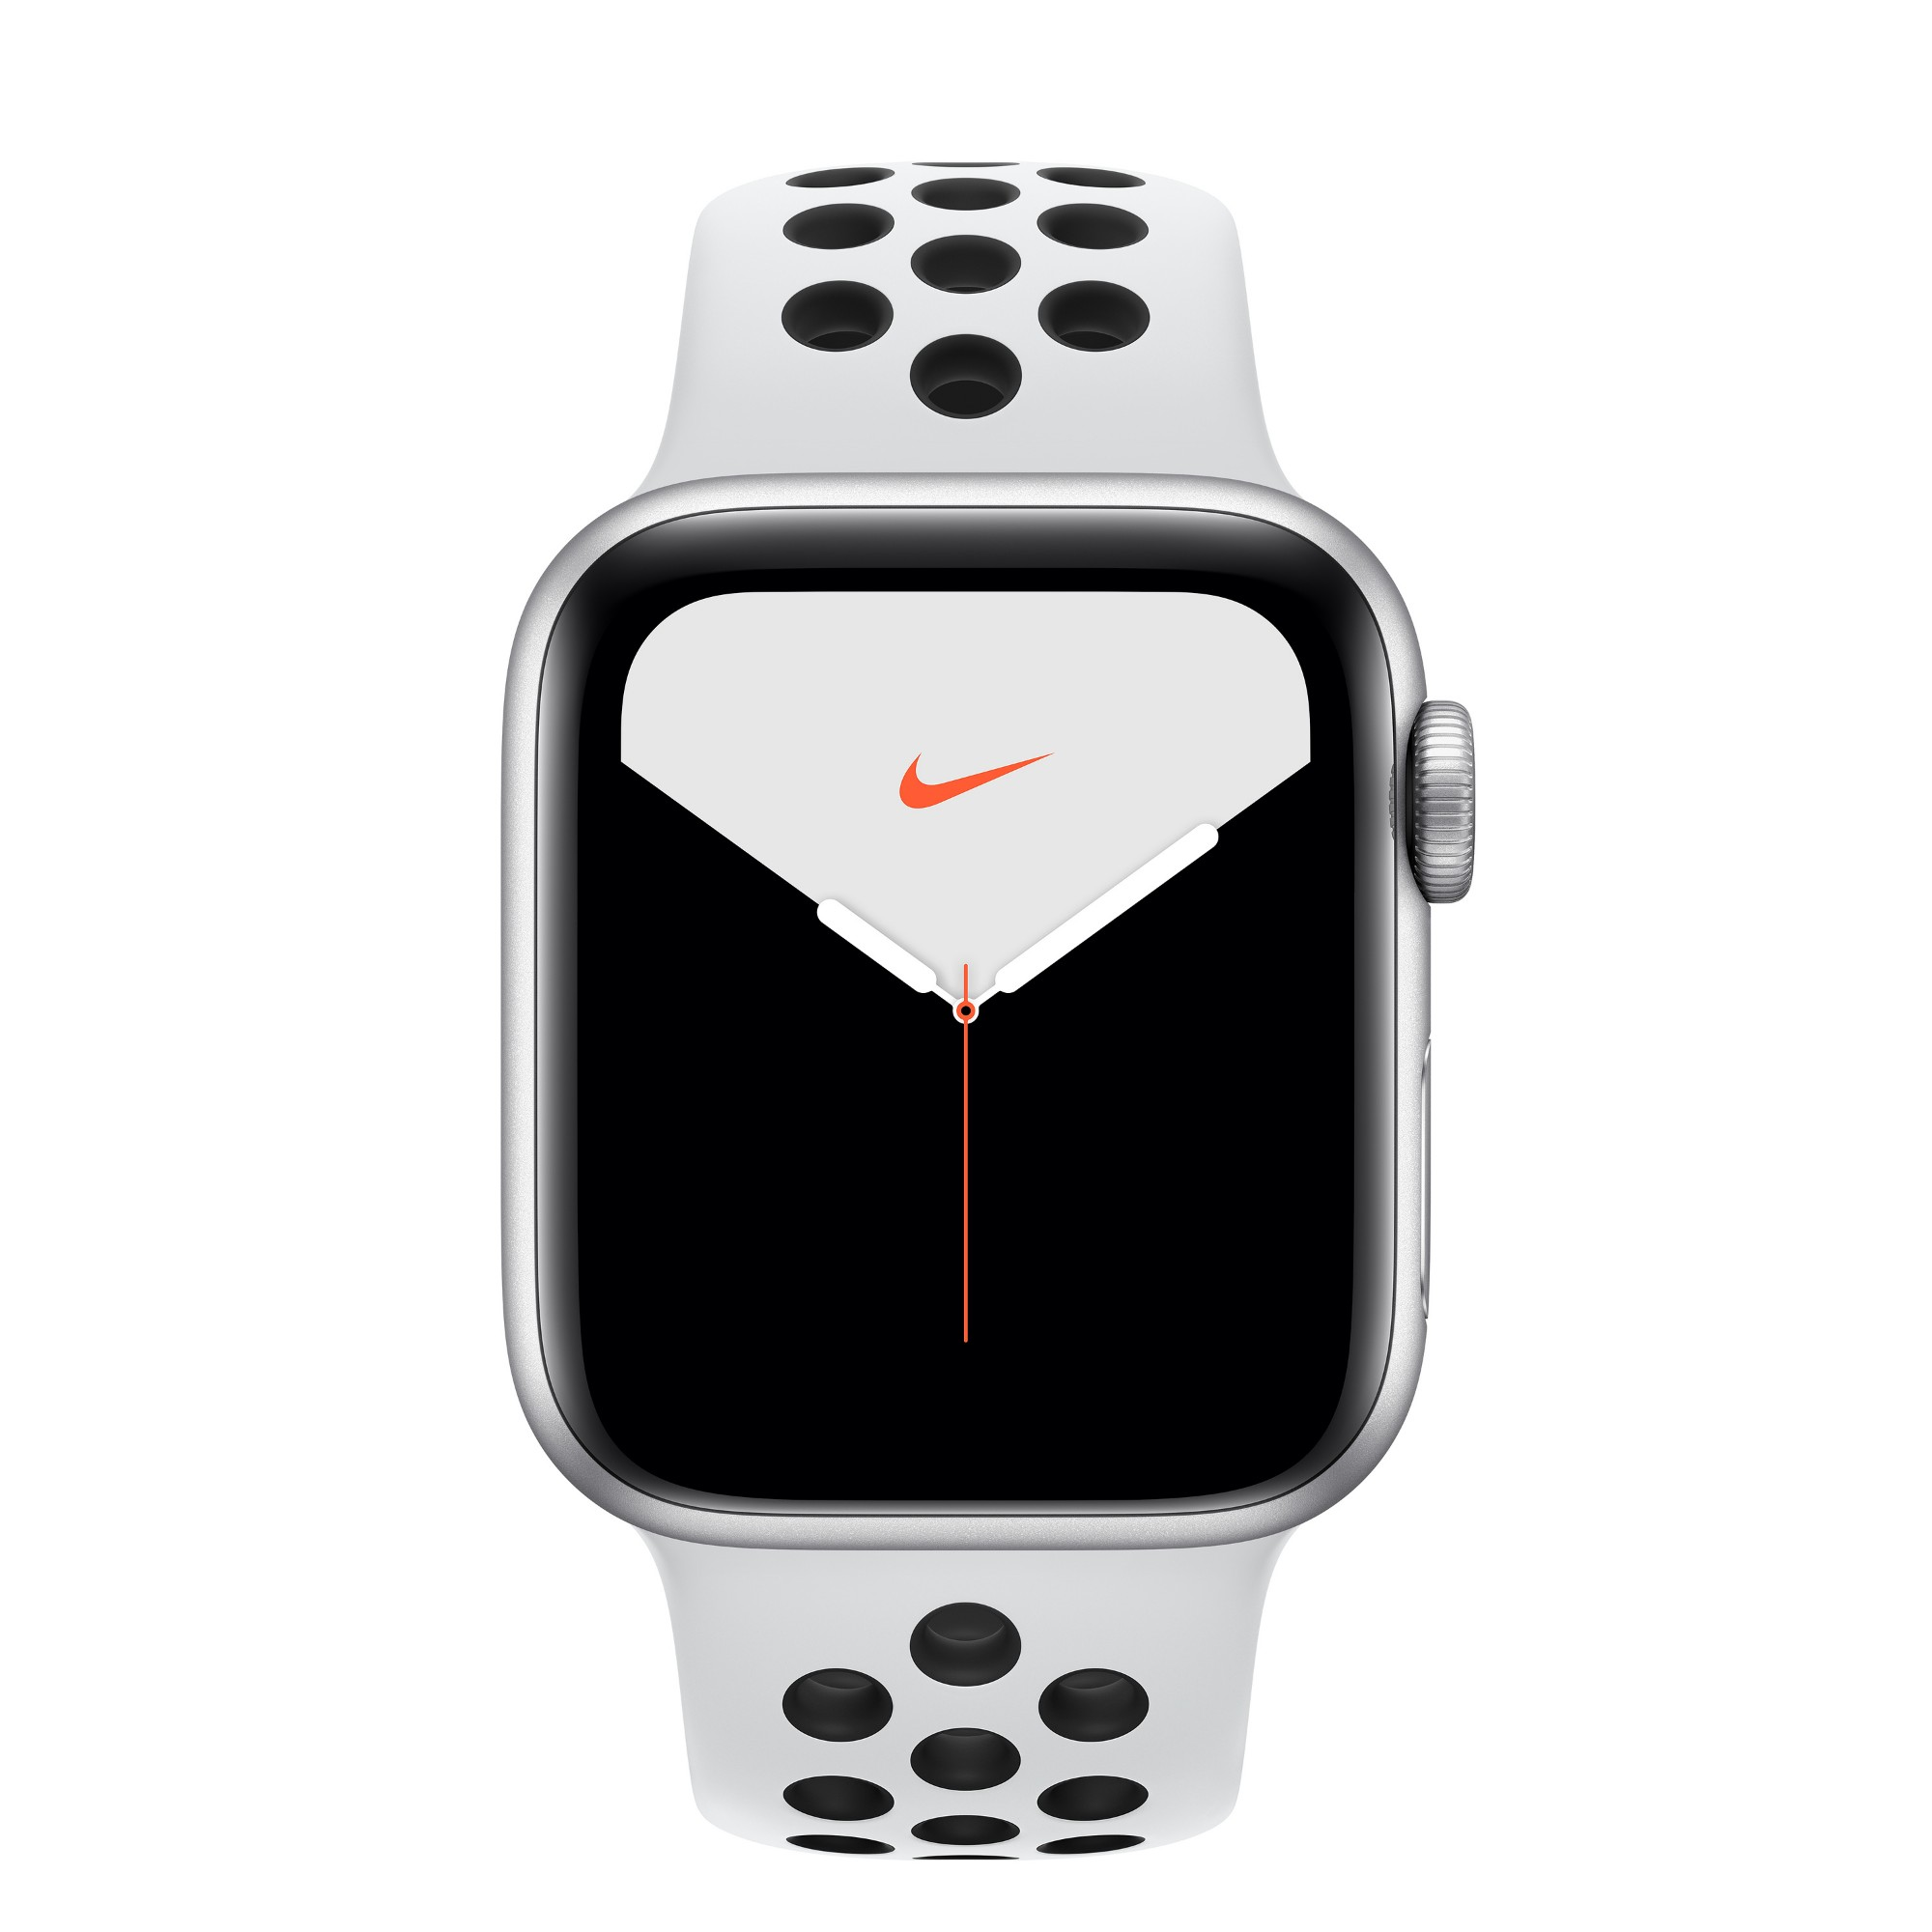 Apple Watch Nike Series 5 smartwatch Silver OLED GPS (satellite)